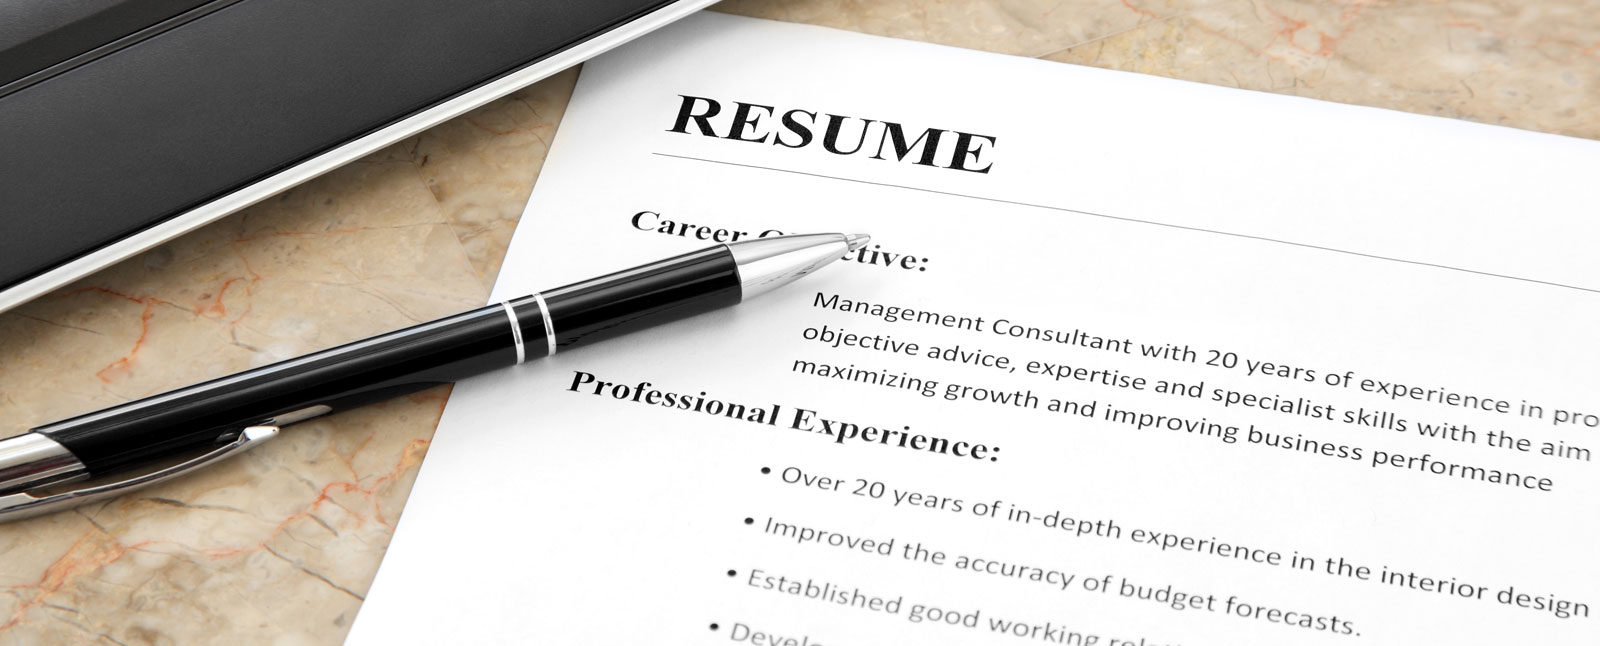 Professional resume services online erie pa